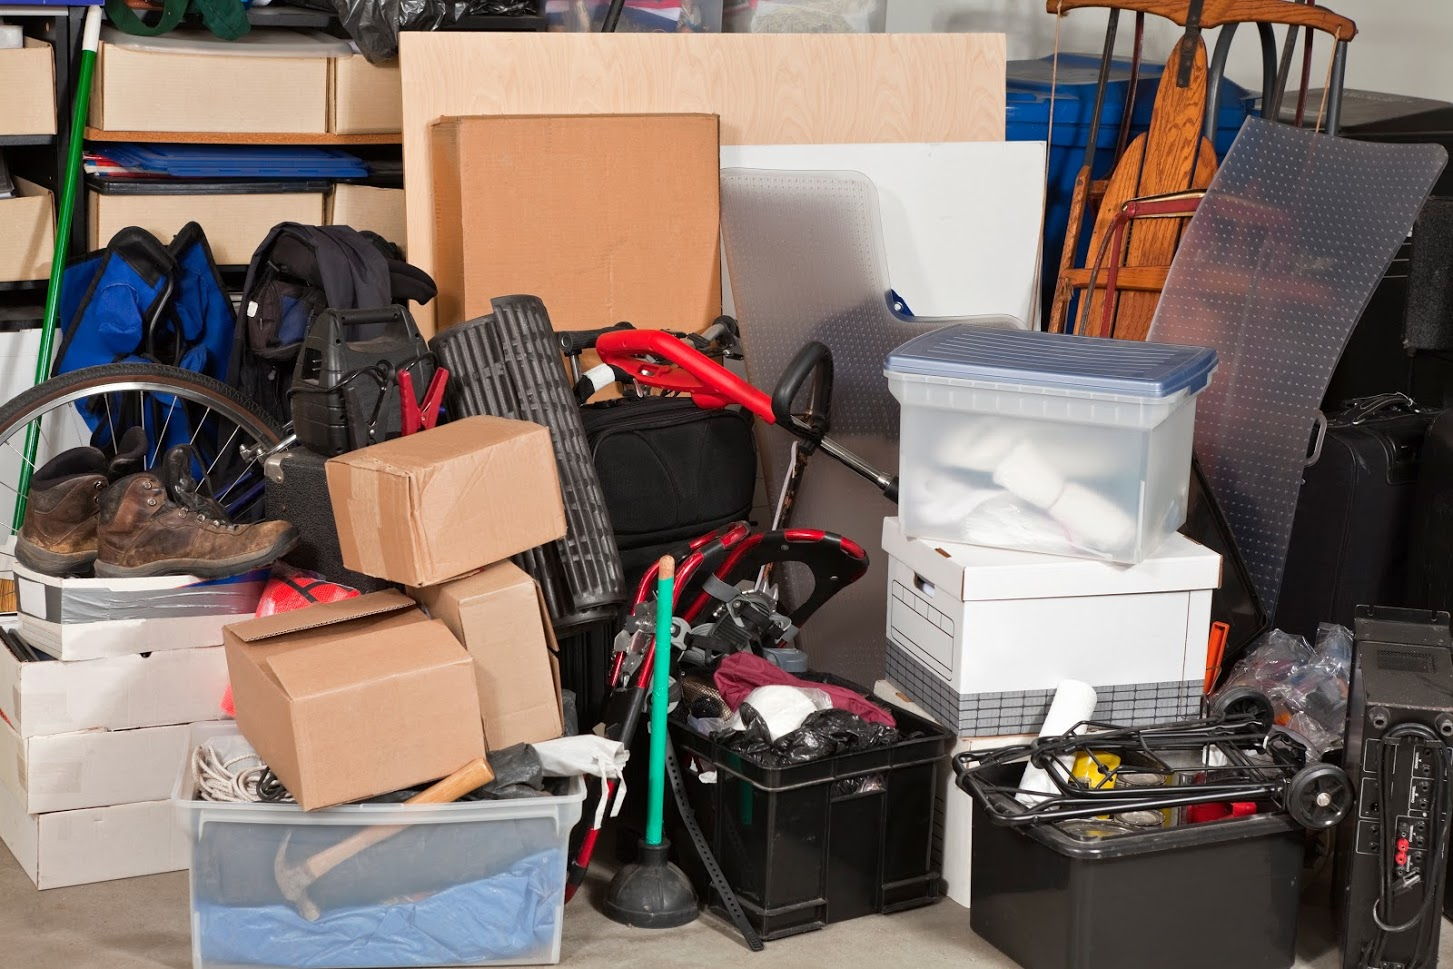 5 Stress Reduction Tips When Using Self Storage Between Houses